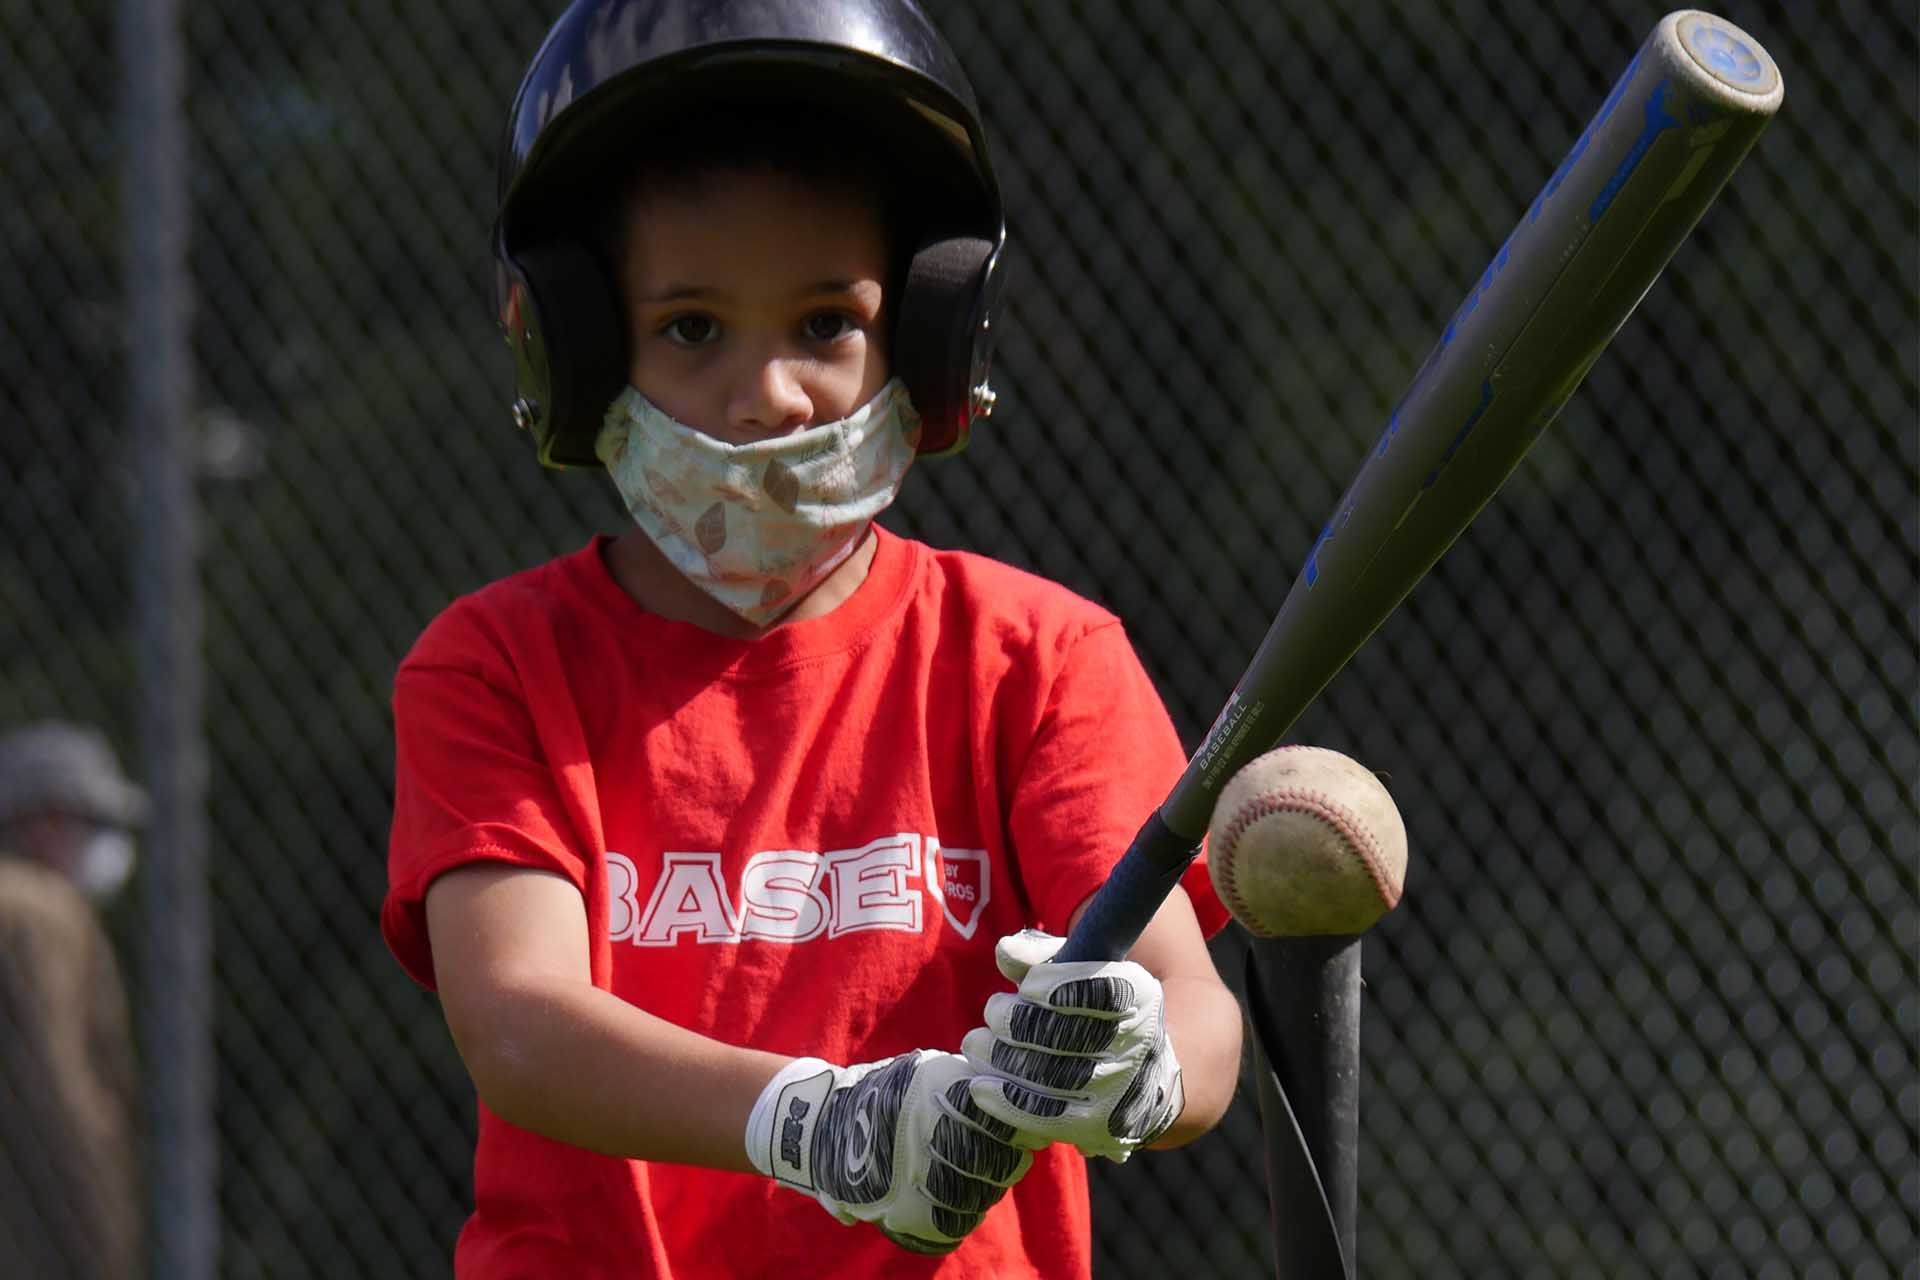 Tee Ball and Coach Pitch Camp (Fall 2020)